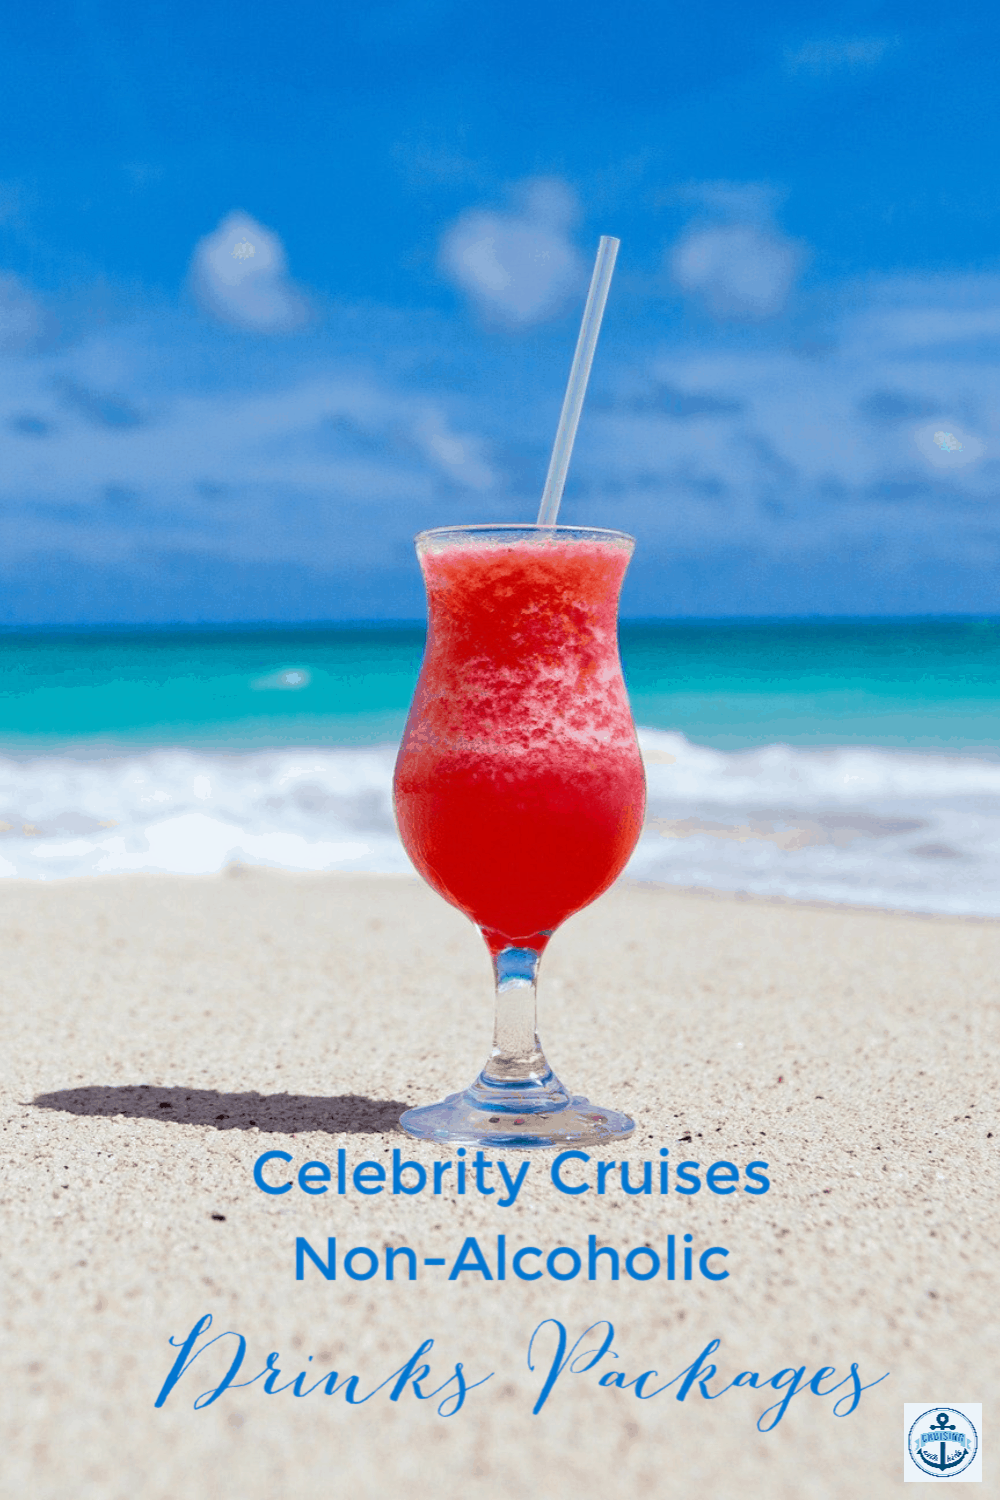 Ultimate guide to Celebrity Cruises Non Alcoholic Drink Packages, including whats included in and the differences between the classic & premium package.